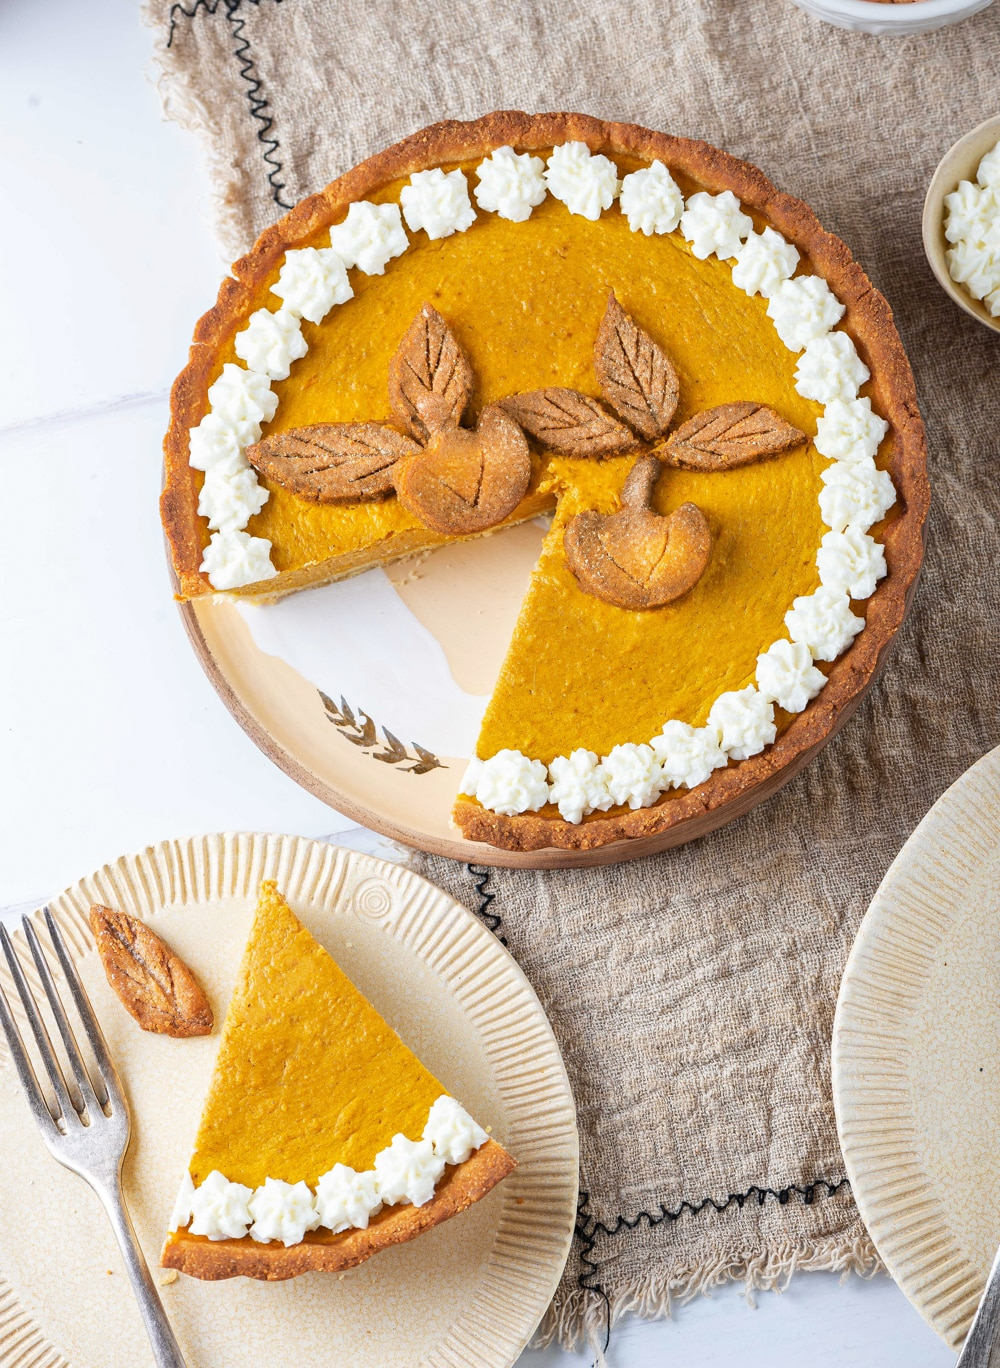 A slice of pumpkin pie on a plate set next to the entire pie.